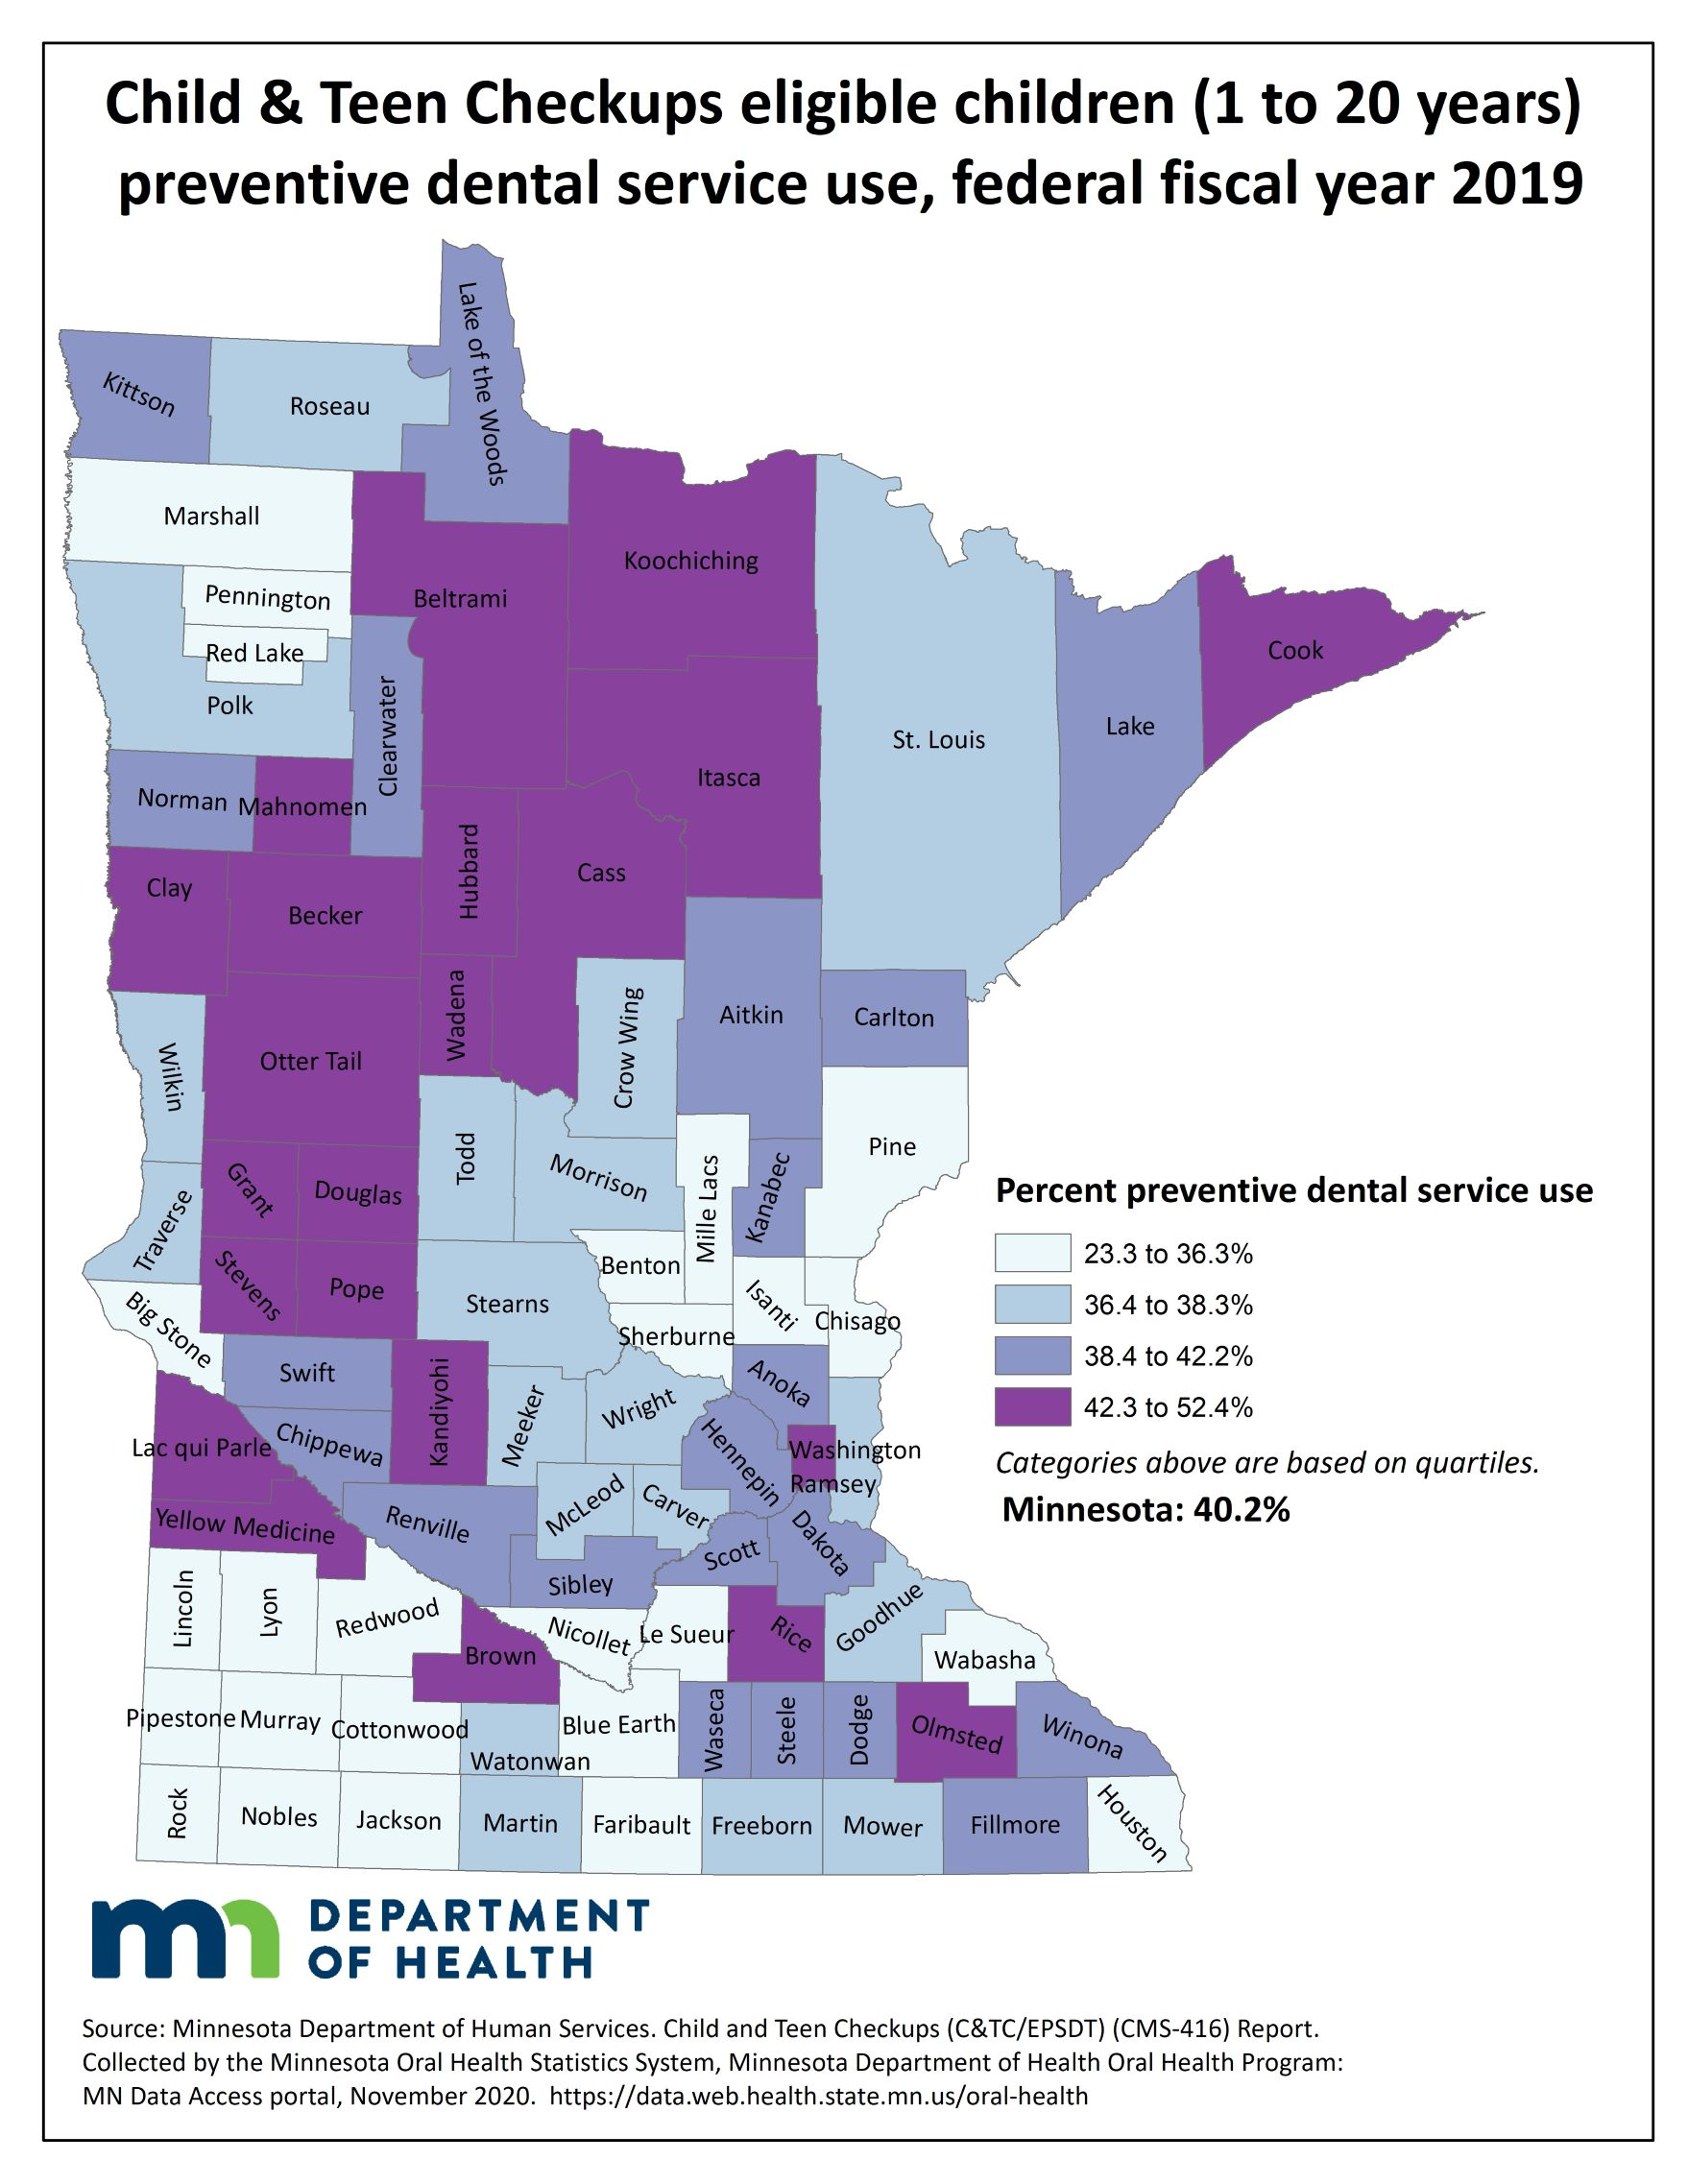 County map image Child & Teen Checkup Eligible Children (1 to 20 years) Non-Dentist Oral Health Service Use and link to PDF of the same